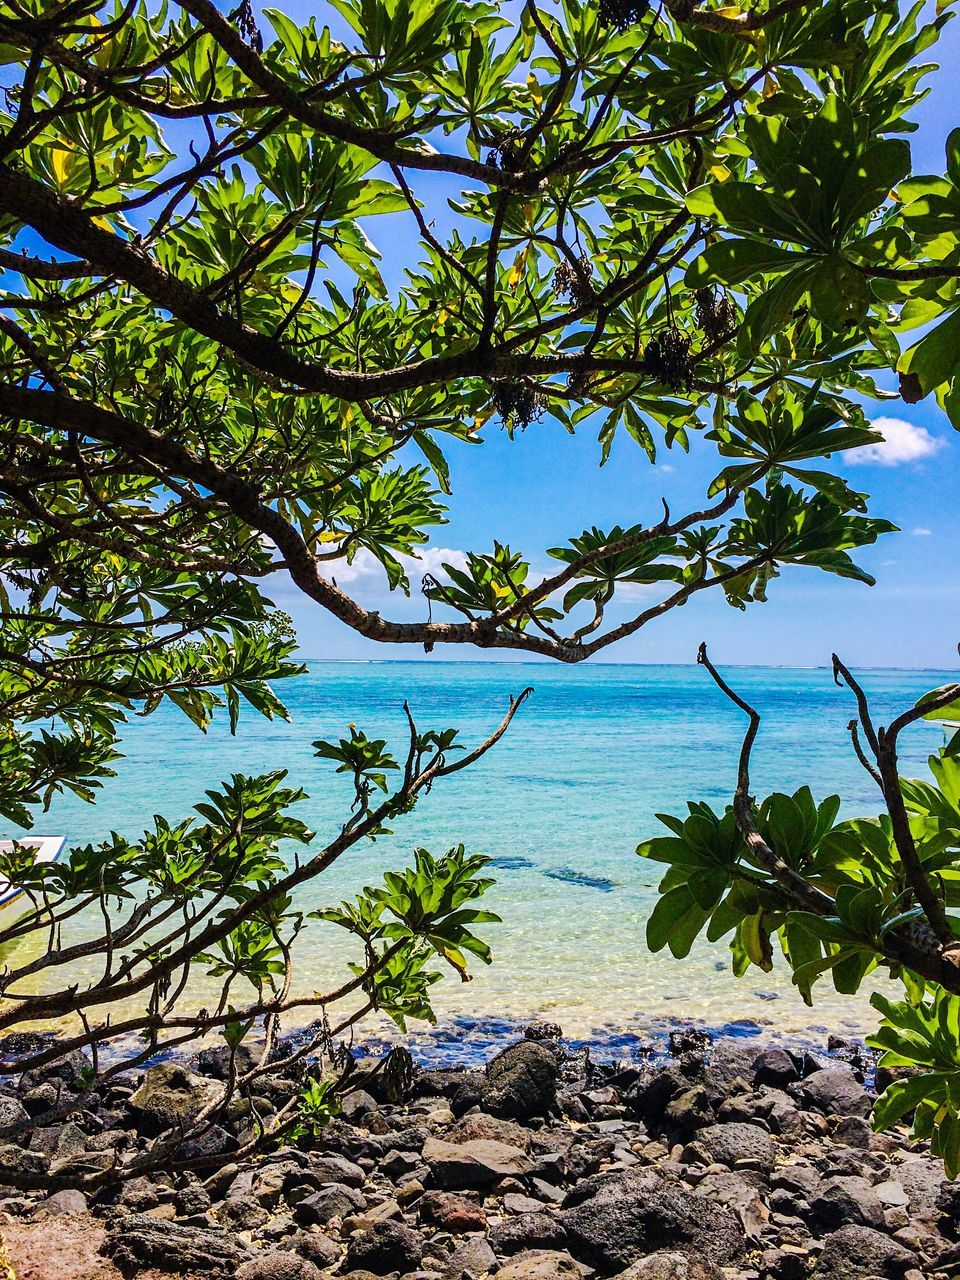 nature, tree, beauty in nature, sea, tranquility, tranquil scene, water, scenics, day, outdoors, idyllic, growth, blue, beach, no people, horizon over water, sky, palm tree, plant, leaf, branch